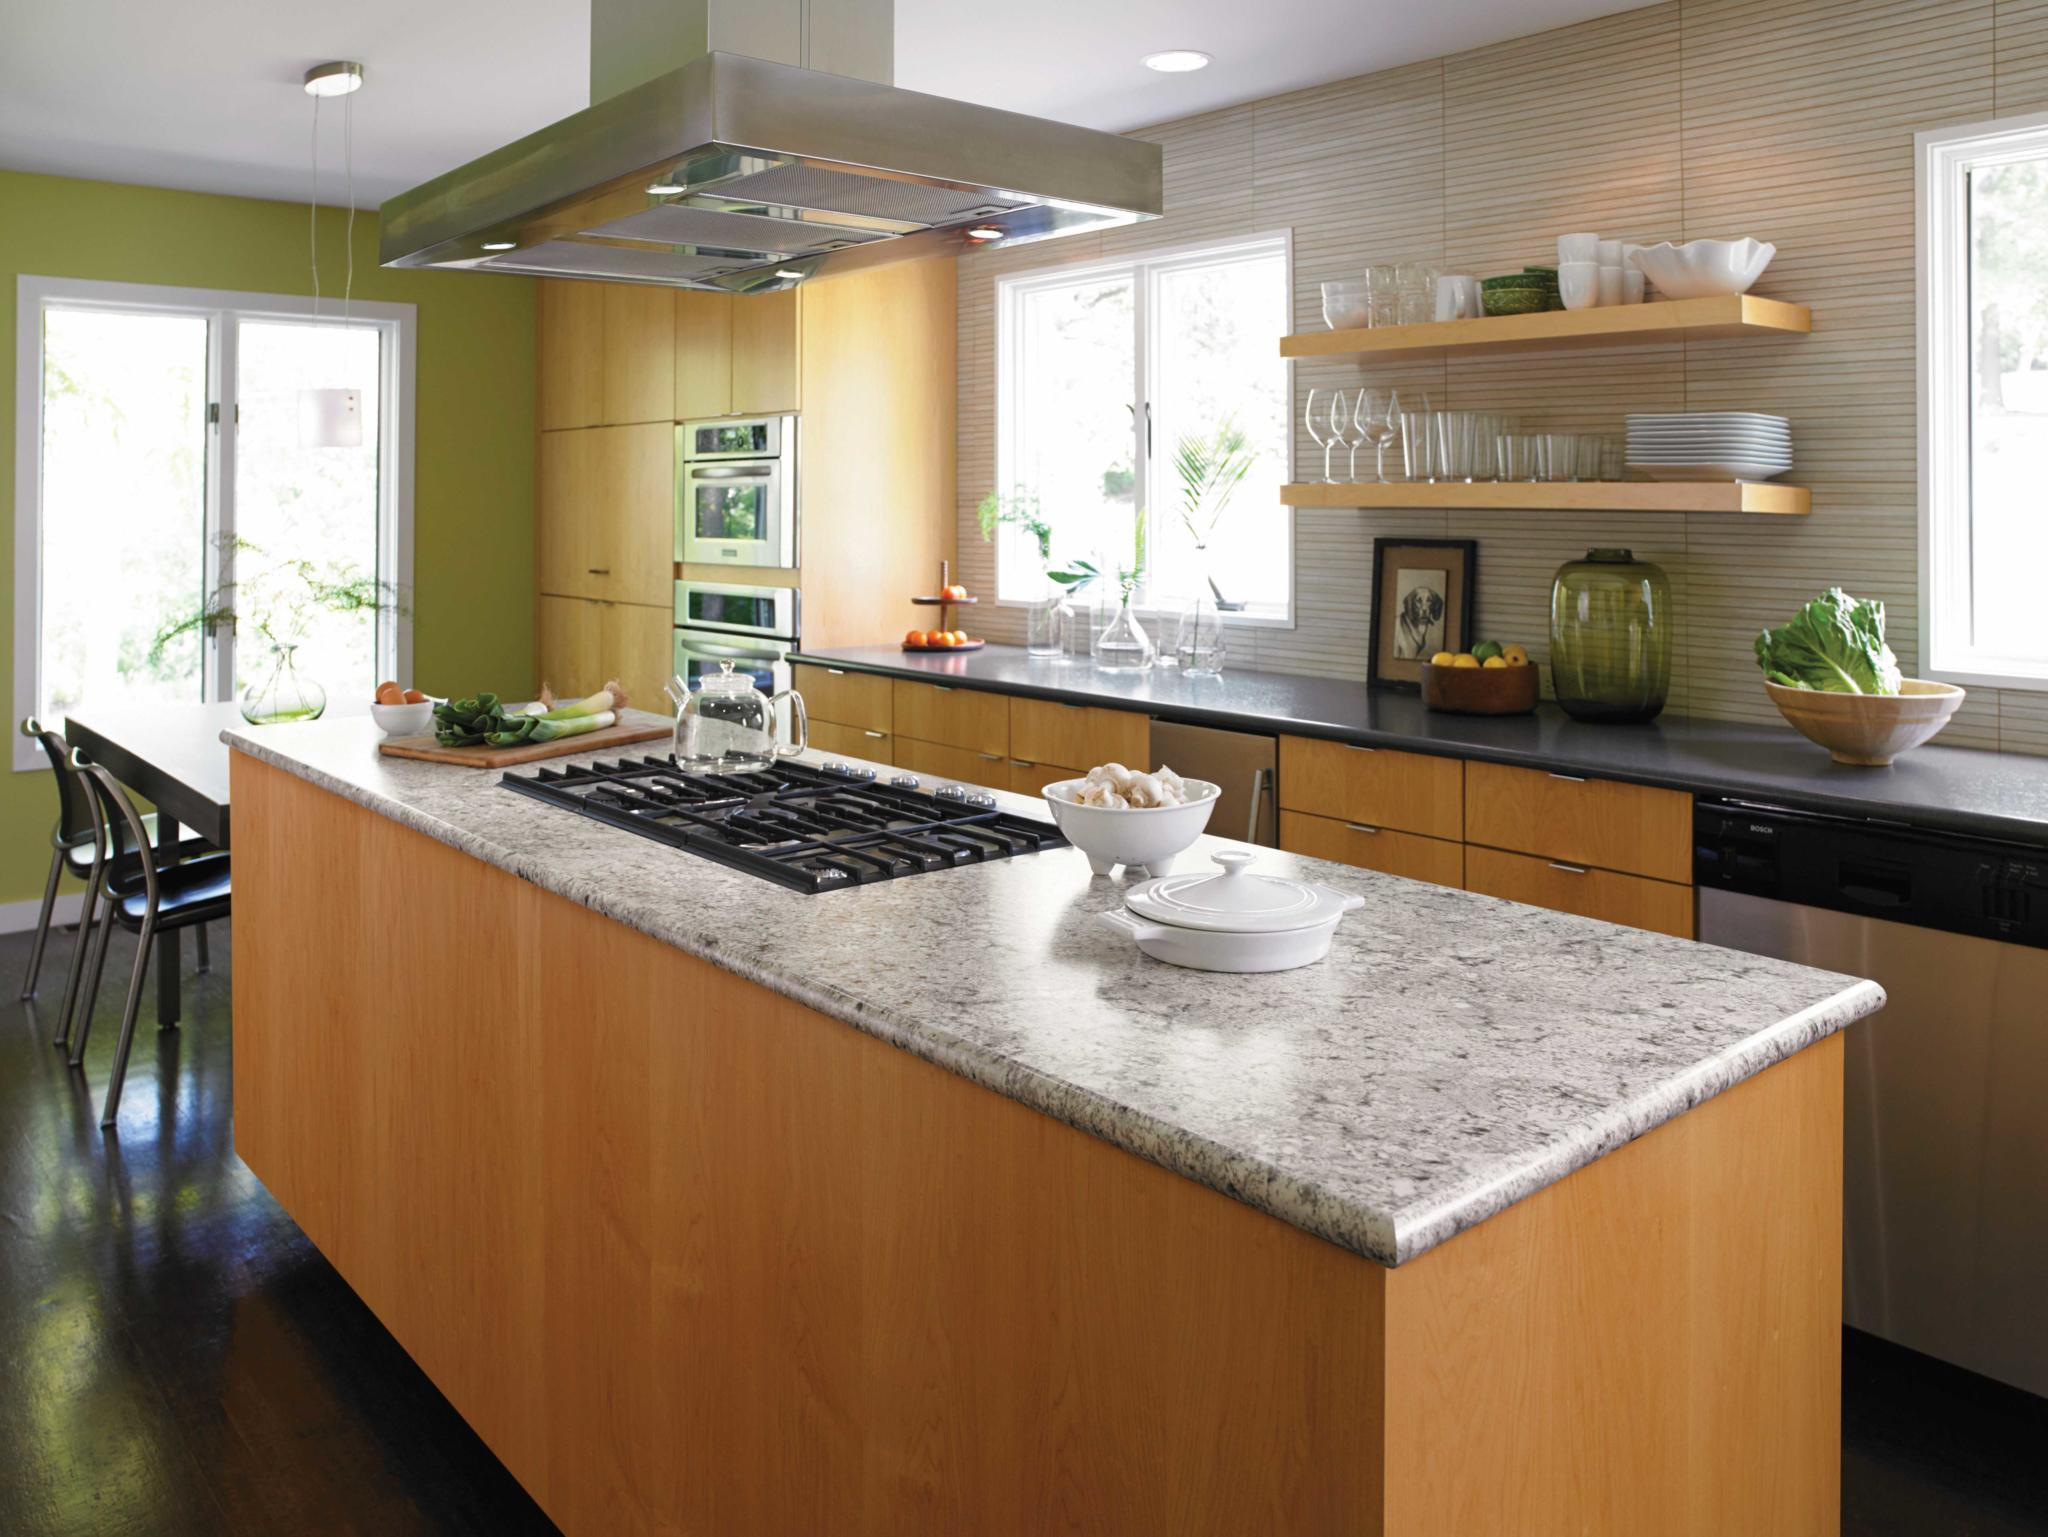 The 7 Most Popular Laminate Colors Floform Countertops